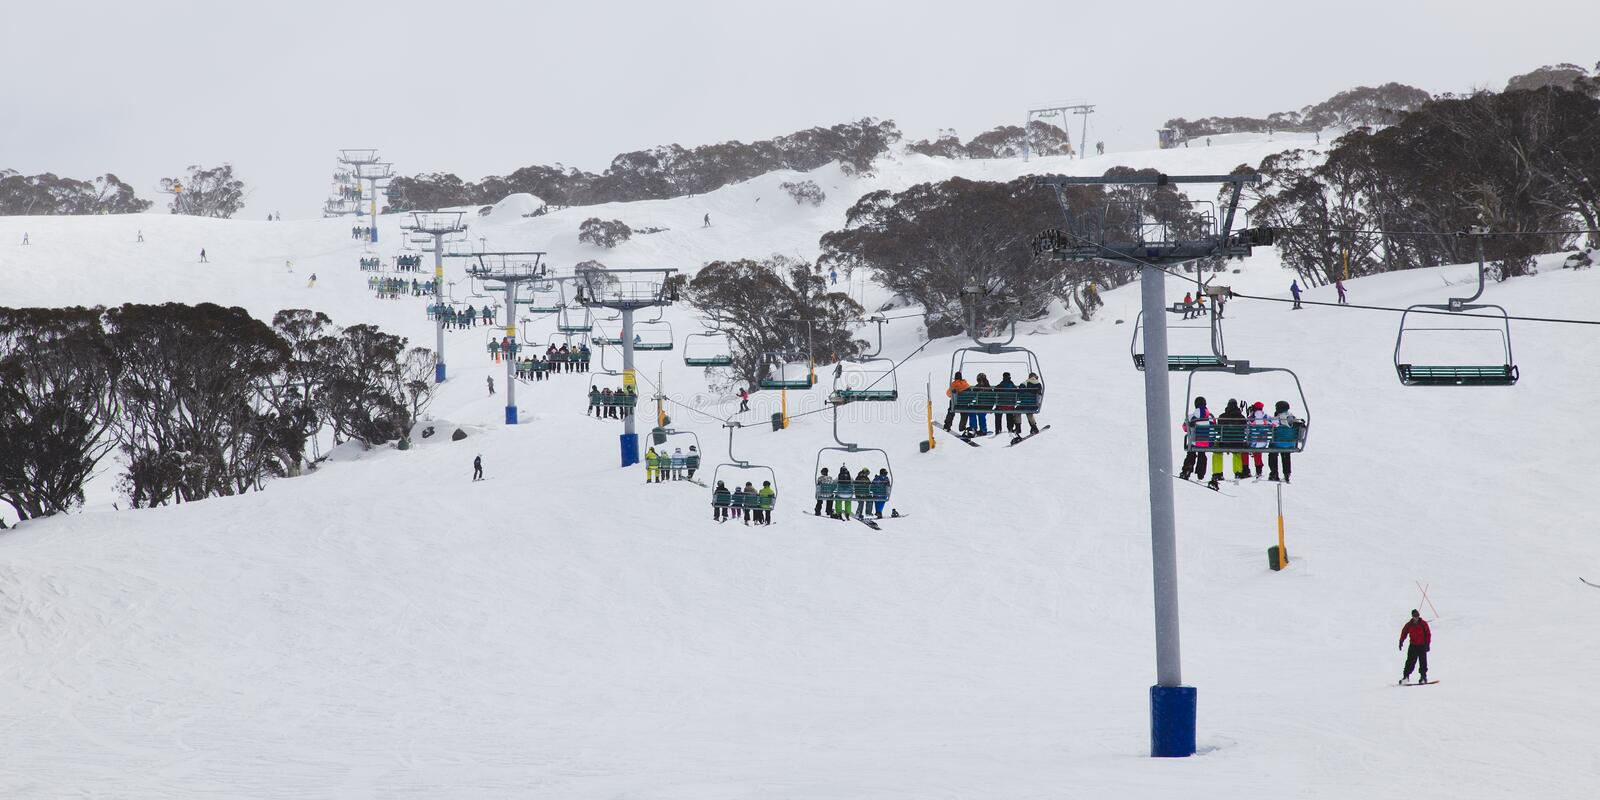 Perisher 8 chair lift pan. Ski resort 8 chair lift up to the mountains in winter with whitу snow and skiying people stock photos